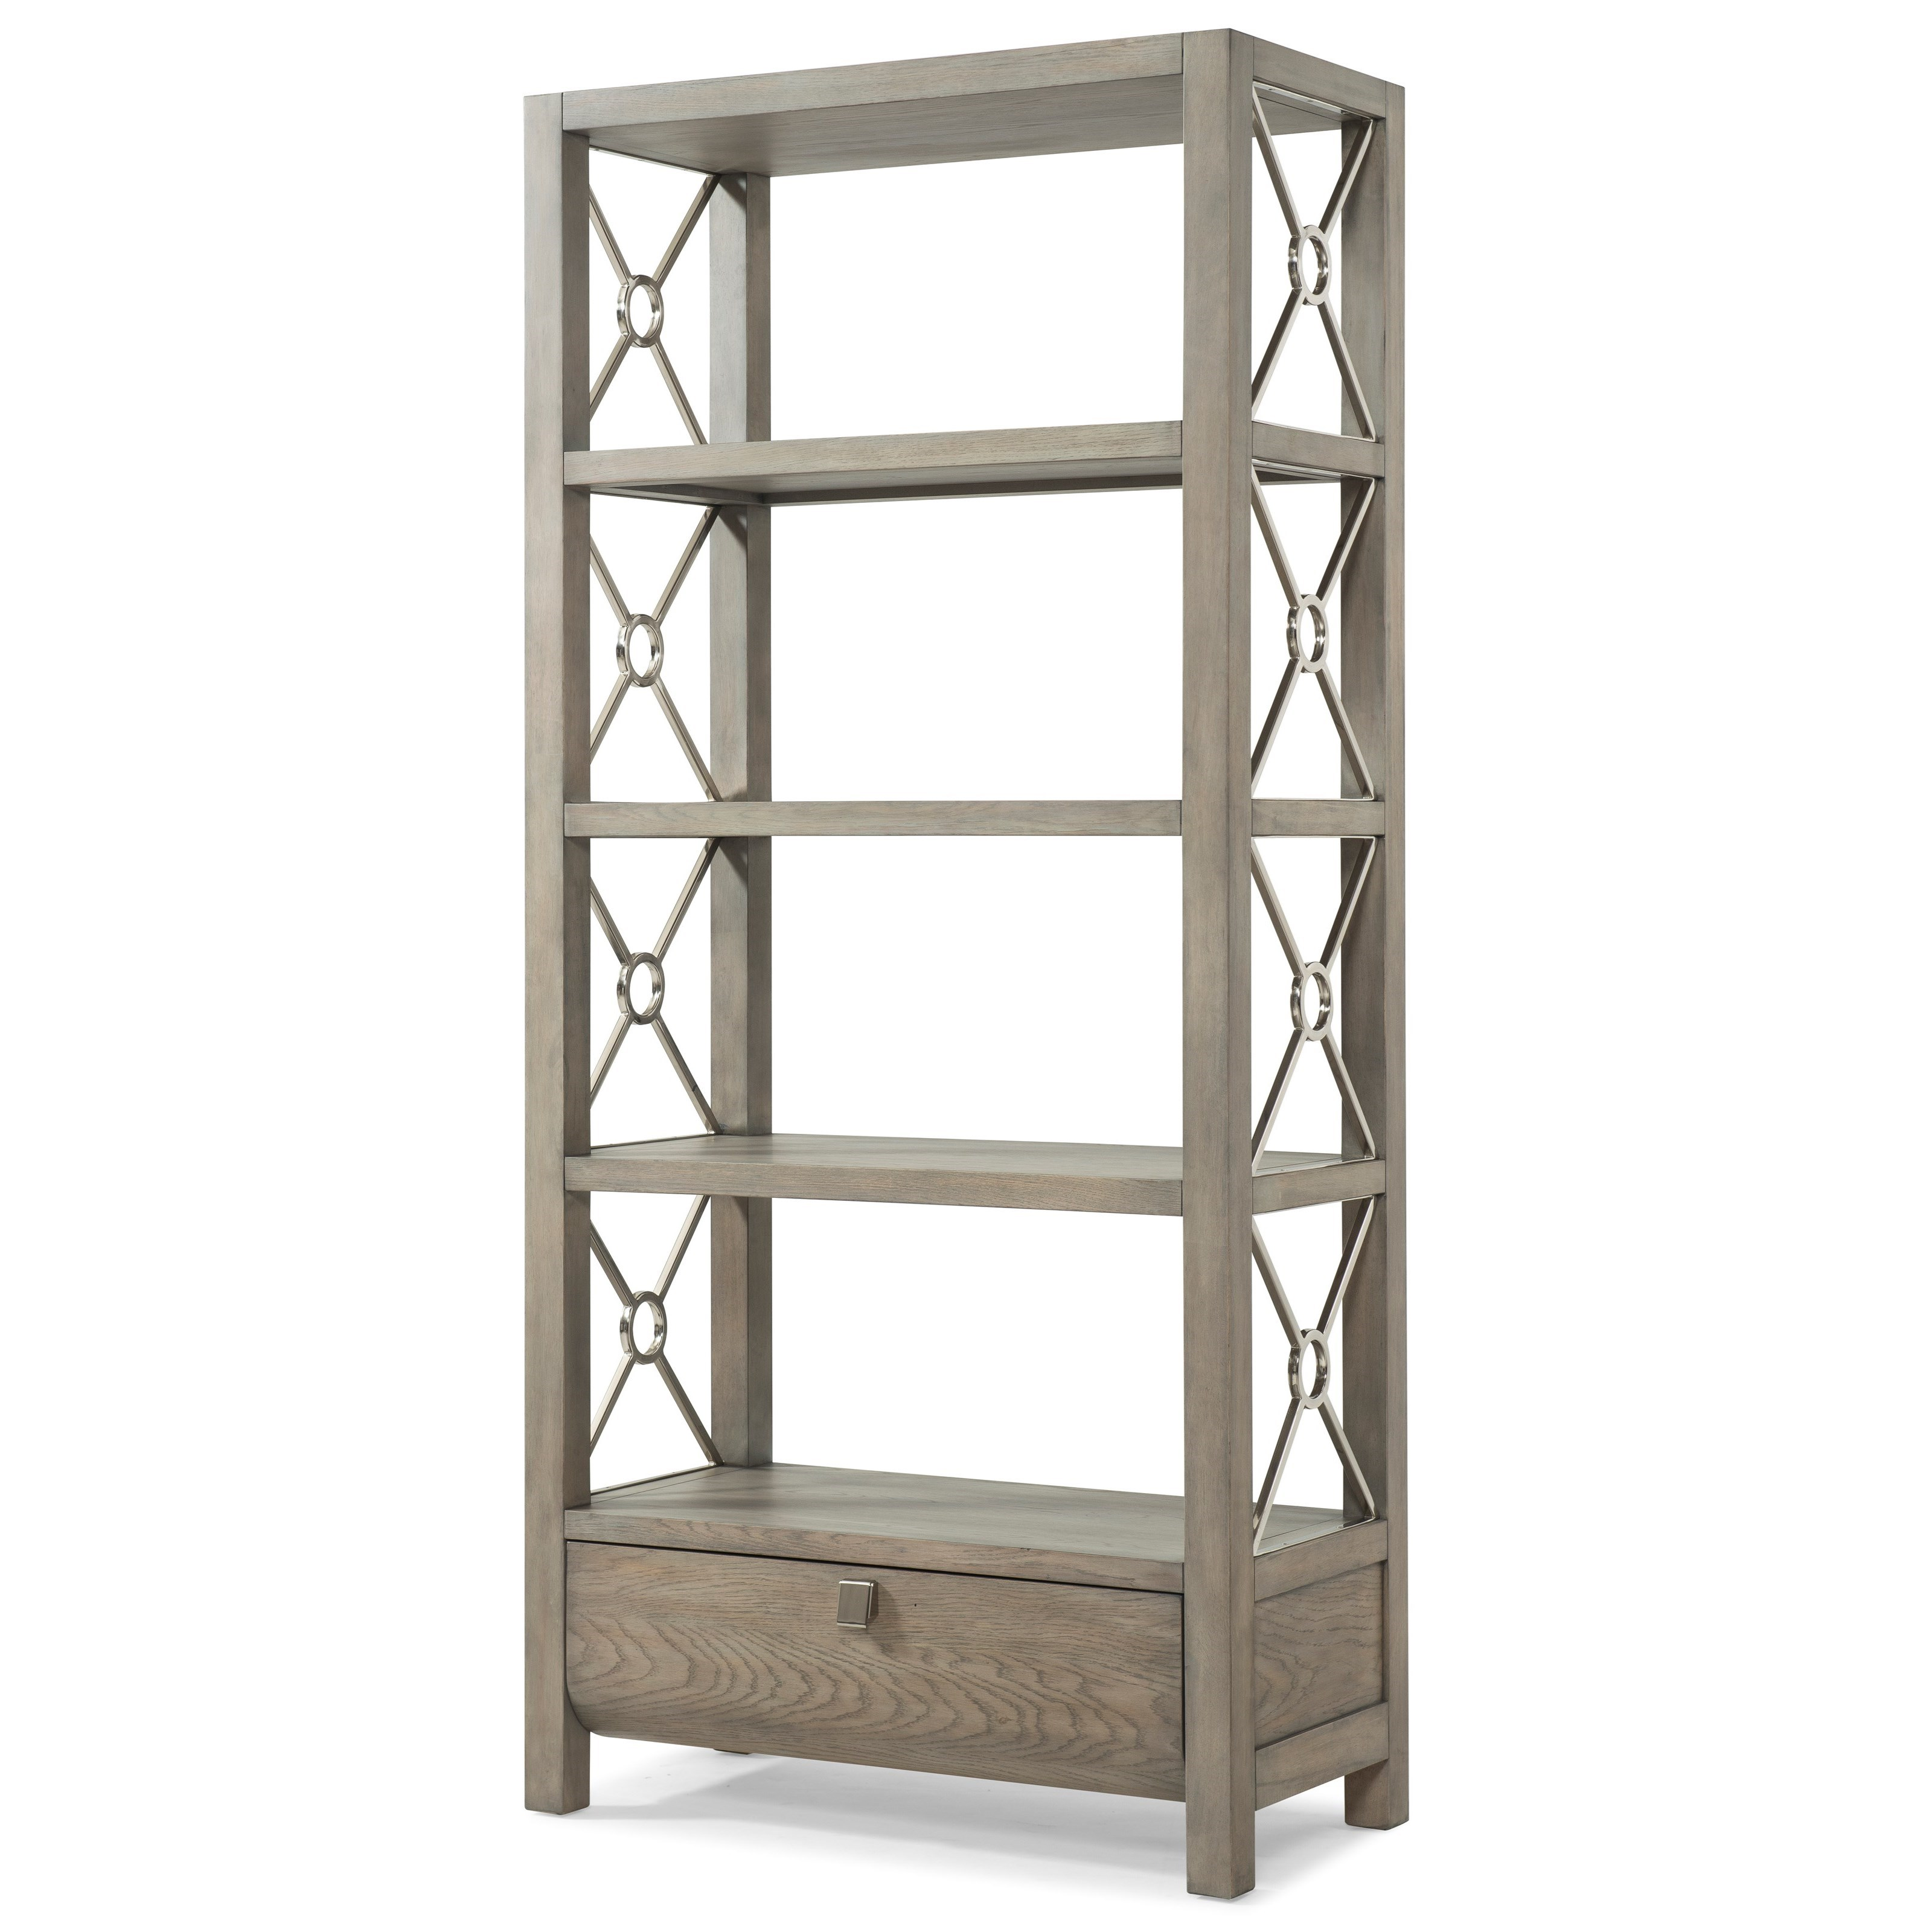 "Trisha Yearwood Home Collection by Klaussner Music City ""Wild For You Baby"" Etagere - Item Number: 924-860 ETAG"